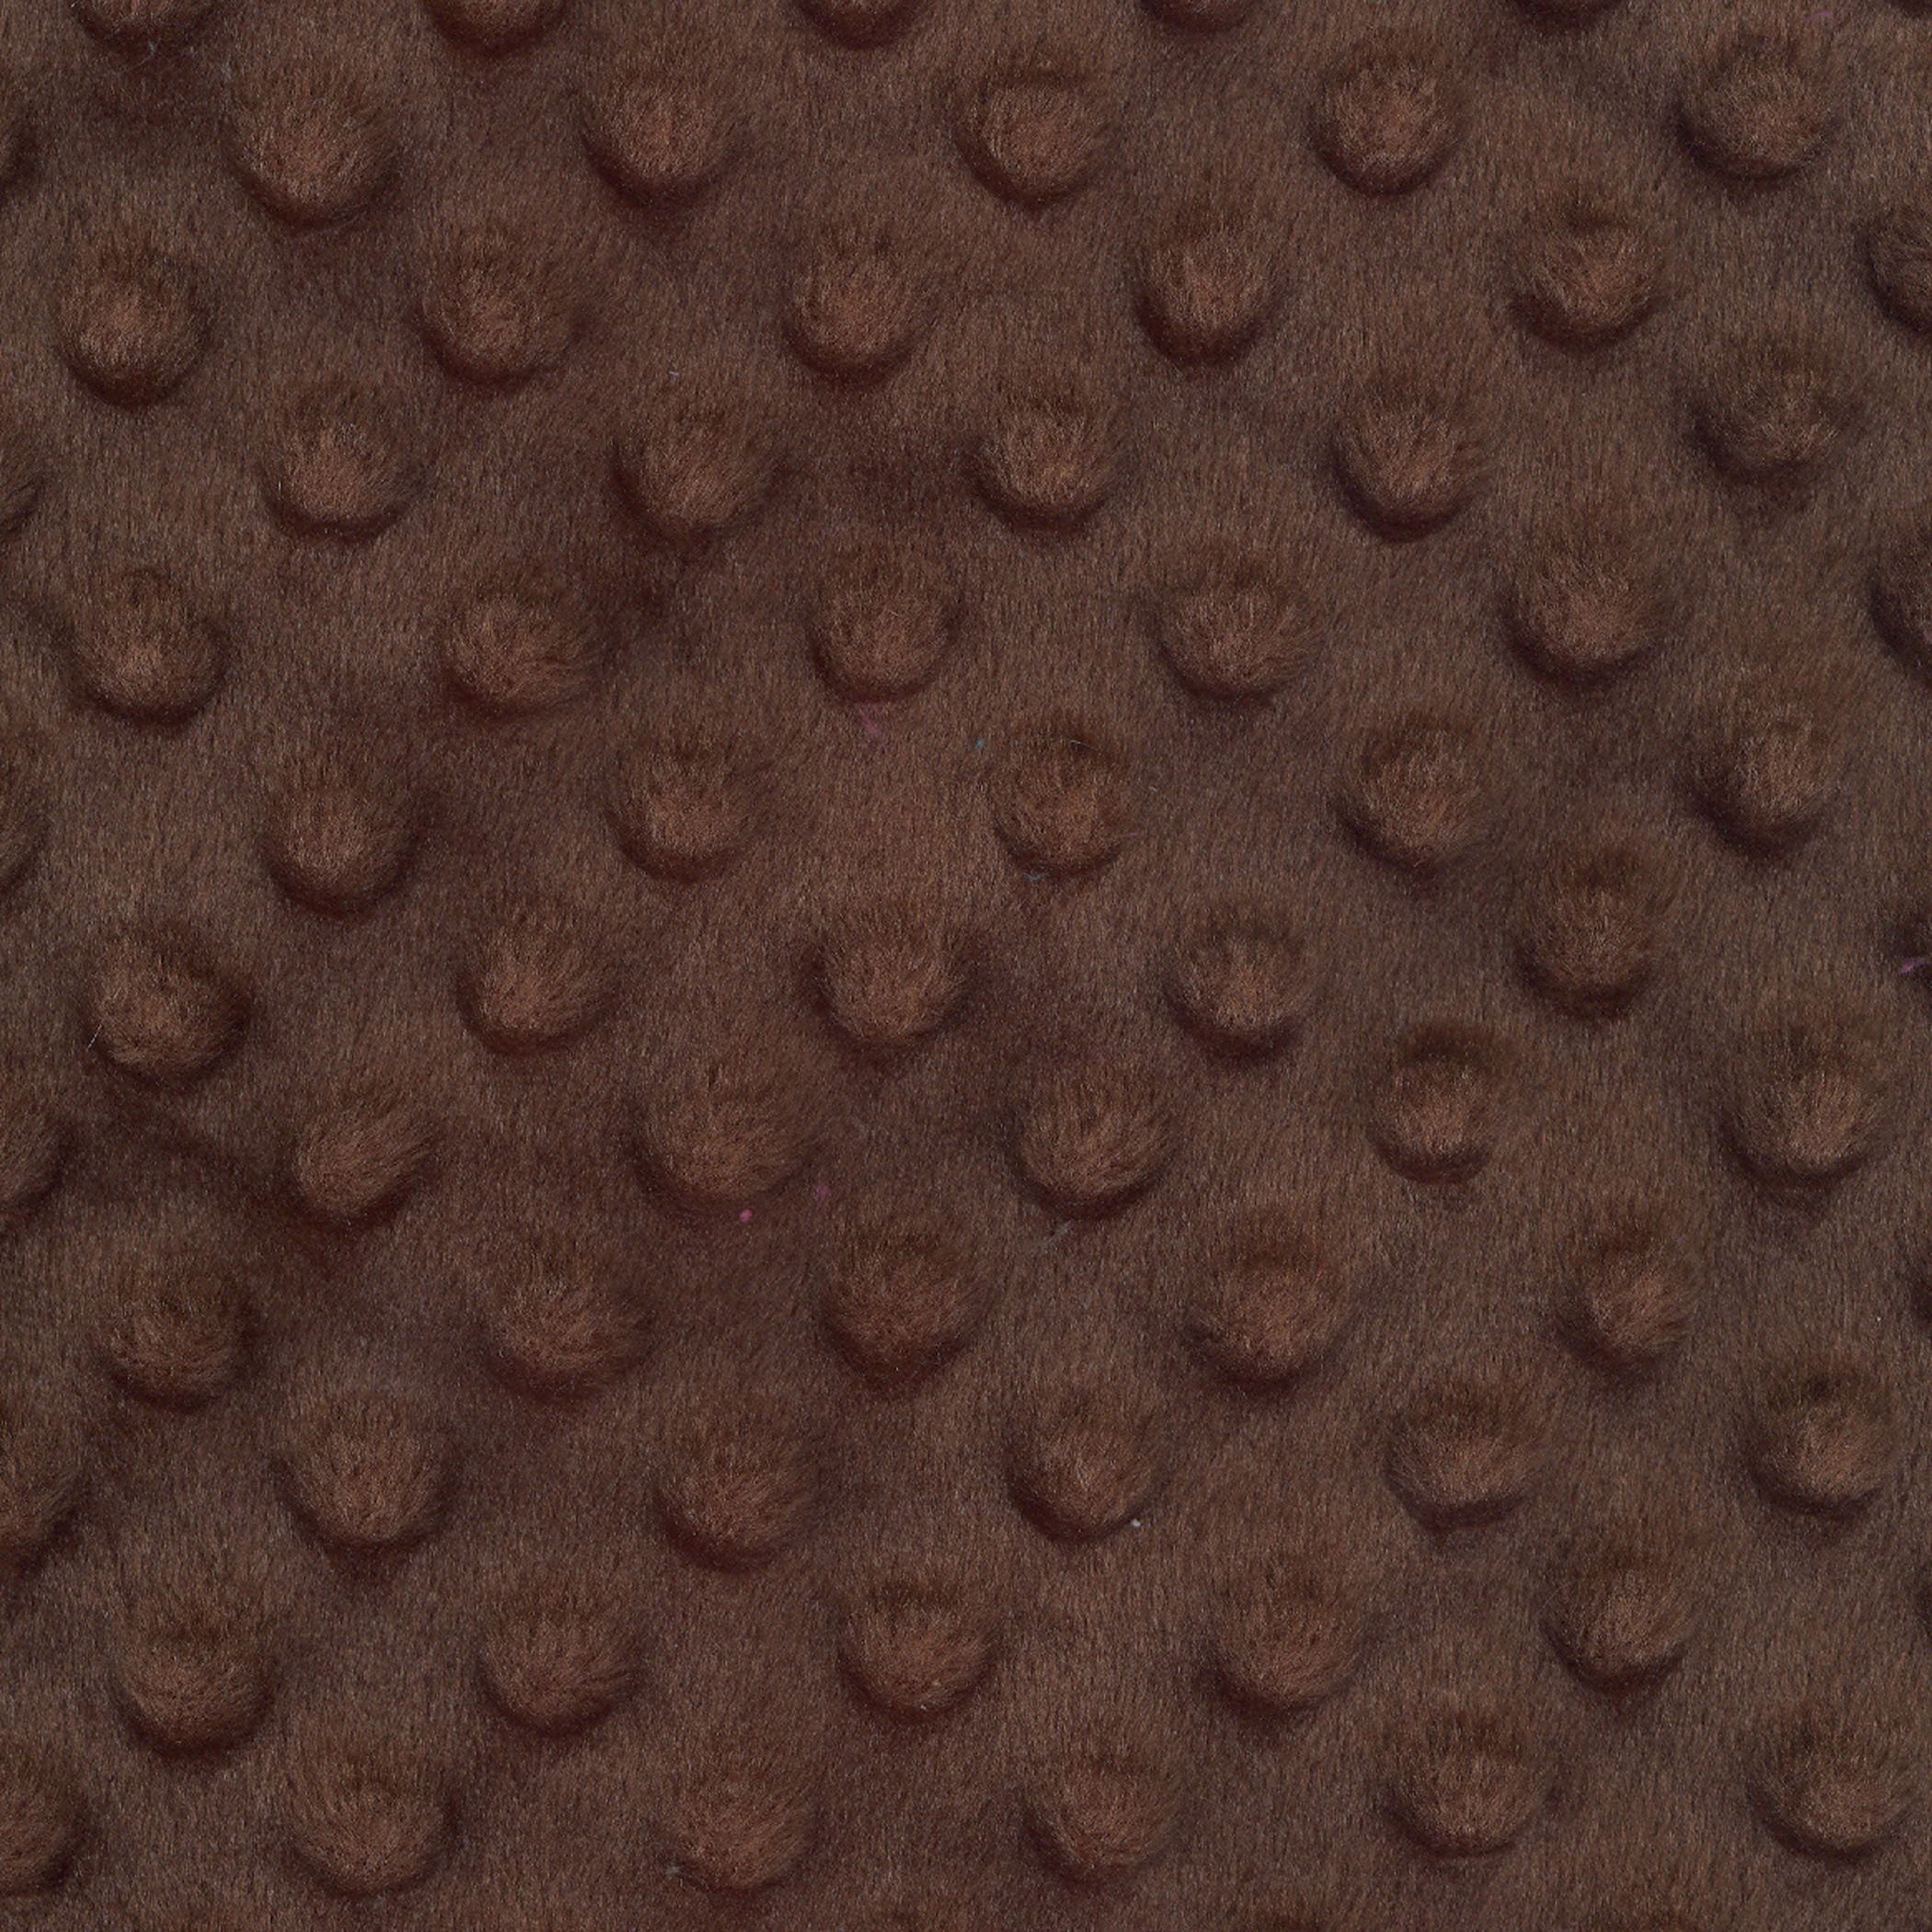 SHASON TEXTILE (2 Yards cut) SOFT CUDDLY MINKY DOT FLEECE, BROWN.